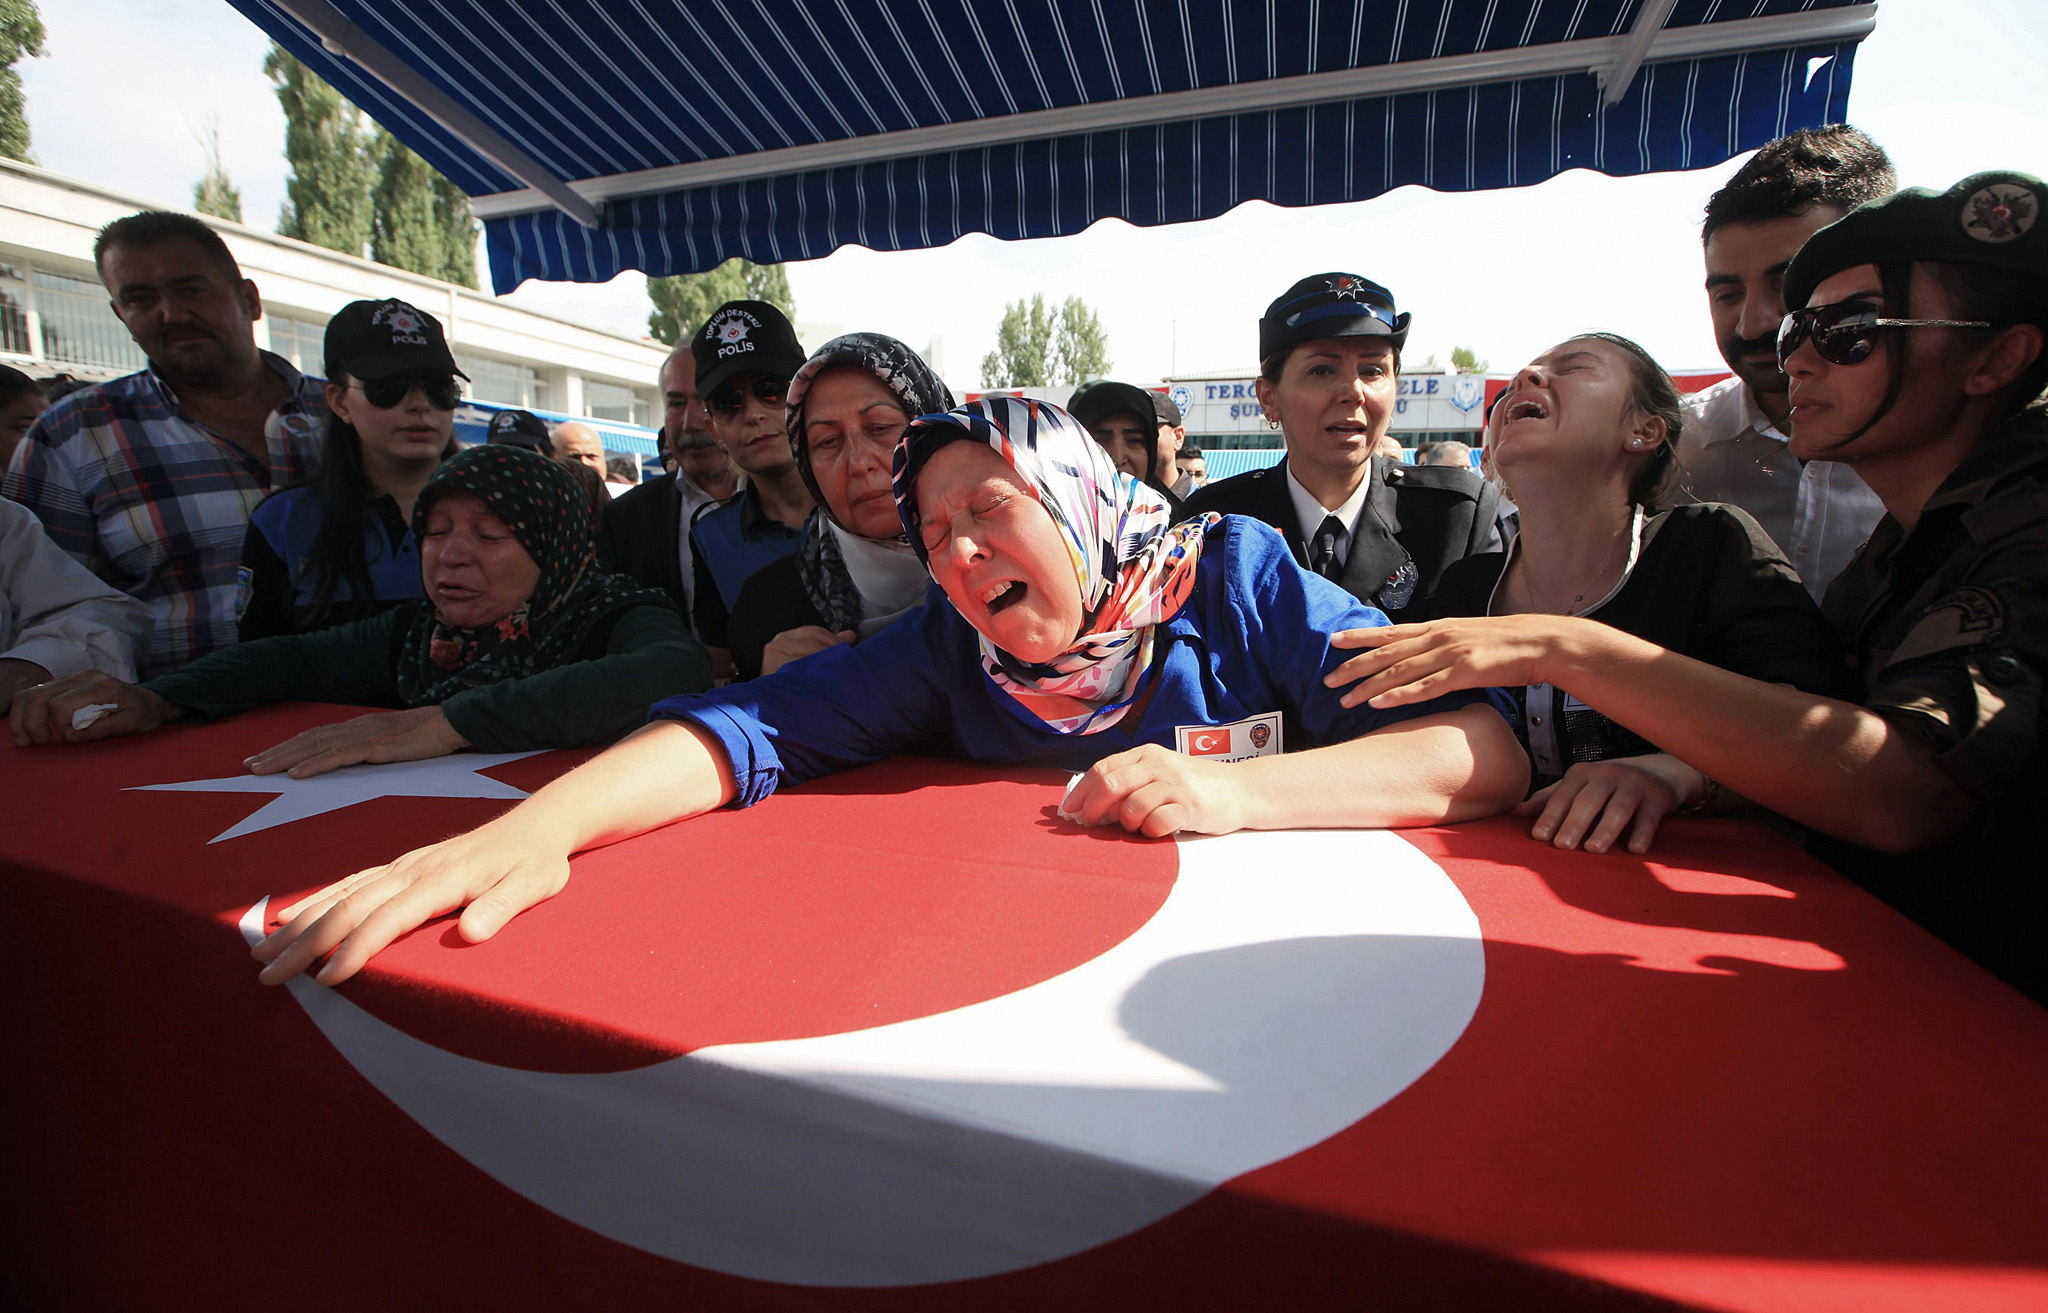 Hulya Aydin (C), mother of Turkish polic...Hulya Aydin (C), mother of Turkish police officer Sahin Polat Aydin killed in an attack, mourns over her son's coffin during his funeral in Ankara on August 11, 2015. Turkish warplanes carried out a new wave of air strikes against Kurdish militants in the southeast of the country in retaliation for a day of bloody attacks that left six members of the security forces dead. AFP PHOTO / ADEM ALTANADEM ALTAN/AFP/Getty Images